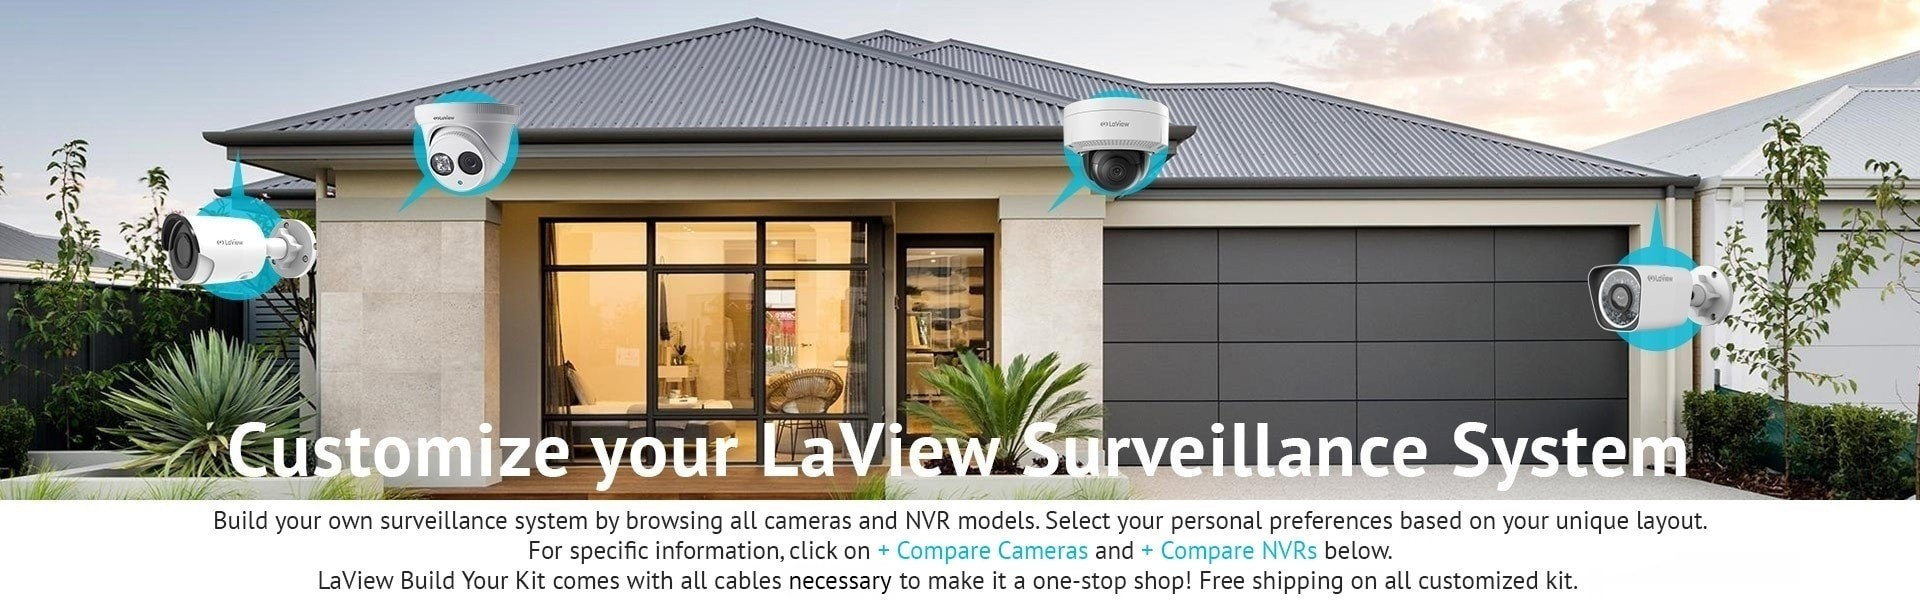 Laview Build Your Kit Customize Your Security Camera System